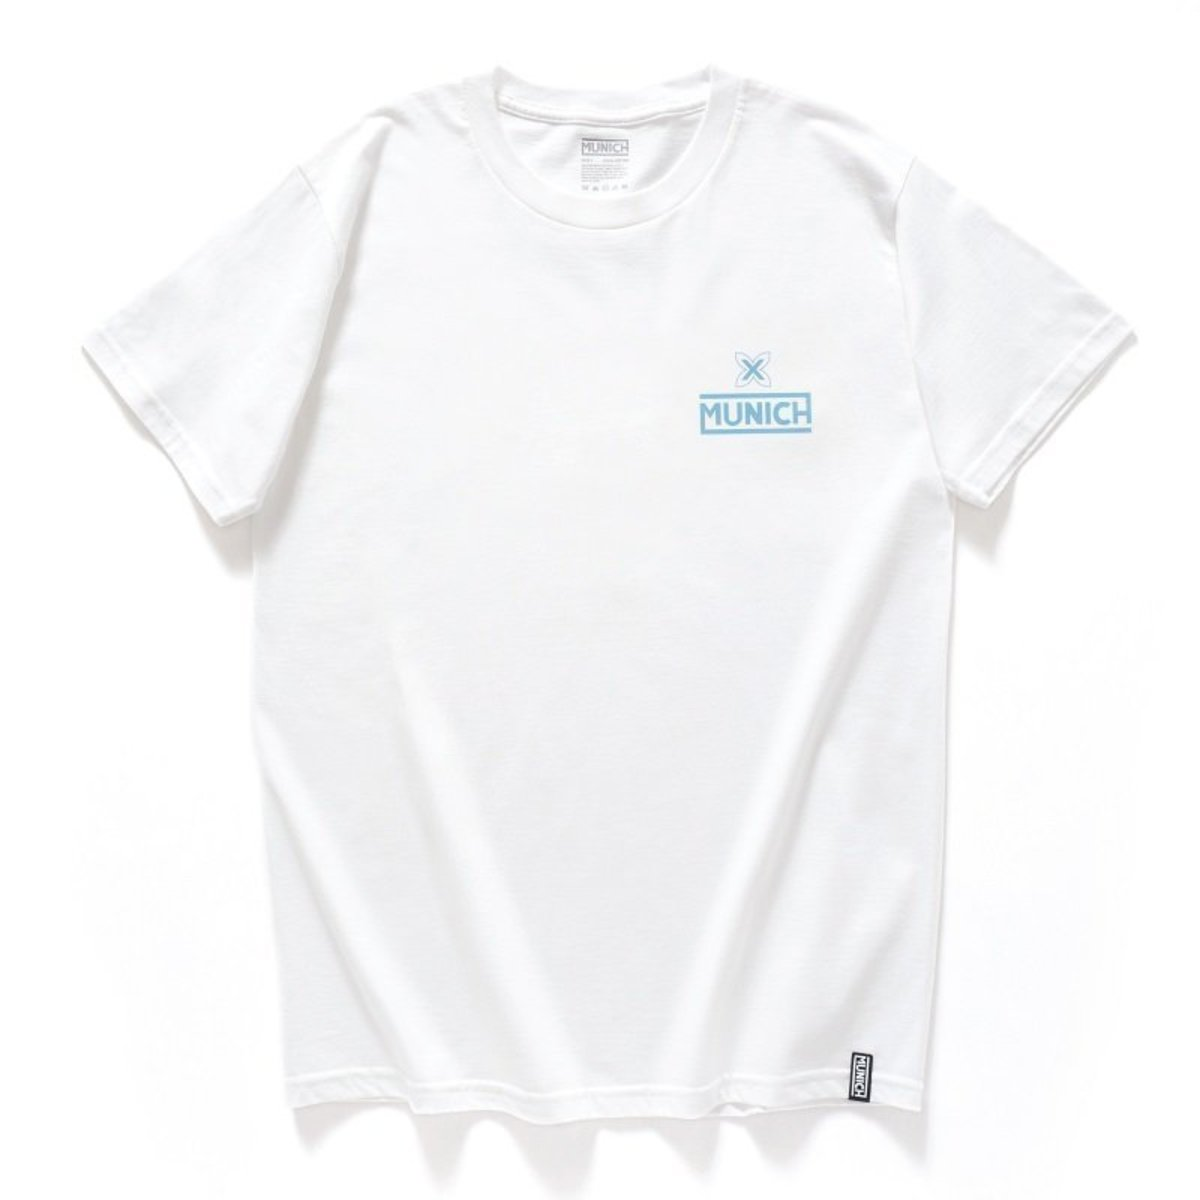 """【Official】- Spain High-density Print Tee, """"Logo"""", White (2 Colors Available)"""